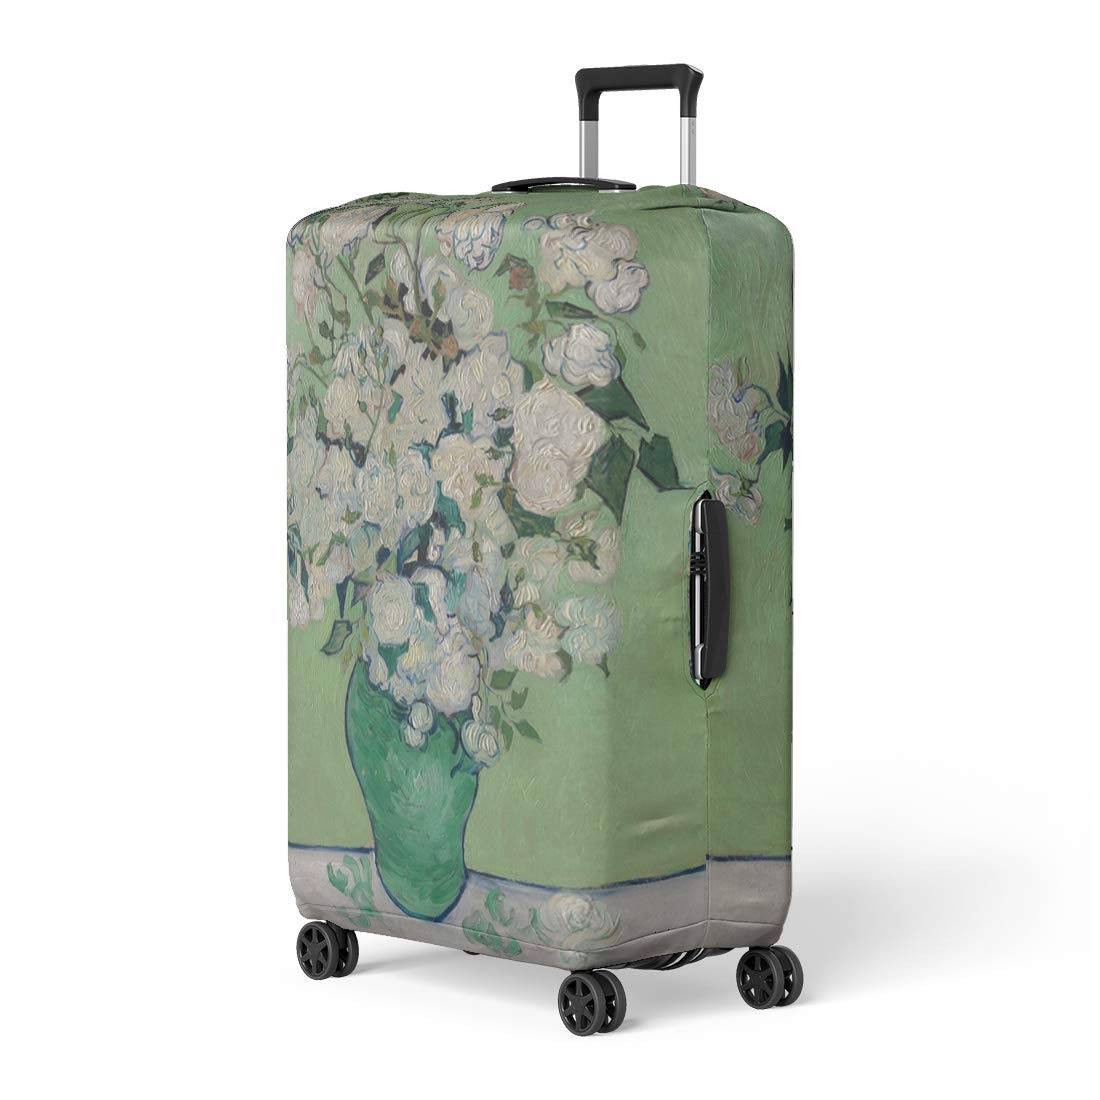 Pinbeam Luggage Cover Roses By Vincent Van Gogh 1890 Dutch Post Travel Suitcase Cover Protector Baggage Case Fits 22-24 inches by Pinbeam